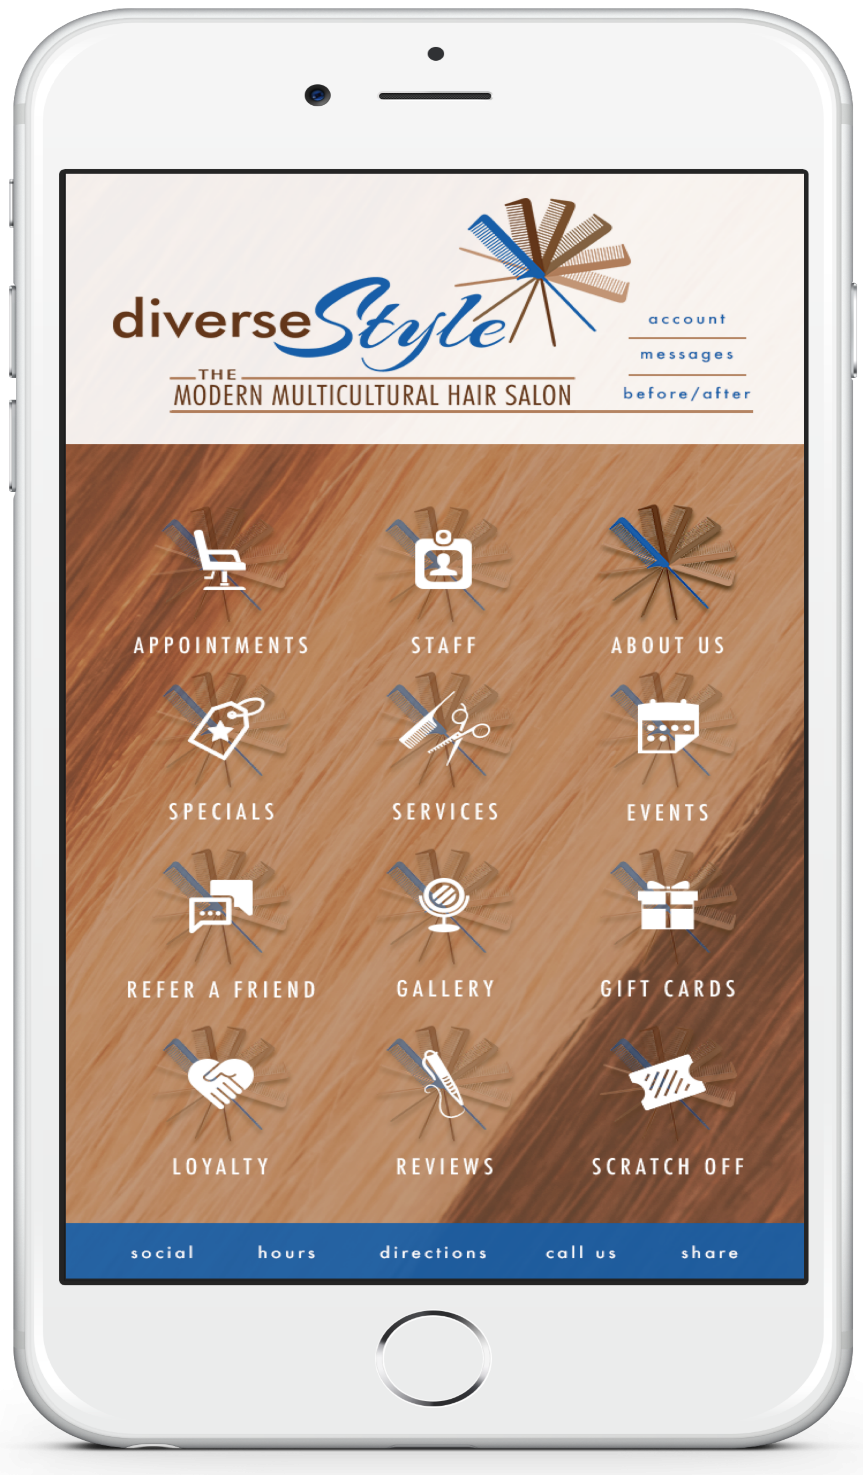 The DiverseStyle Mobile App